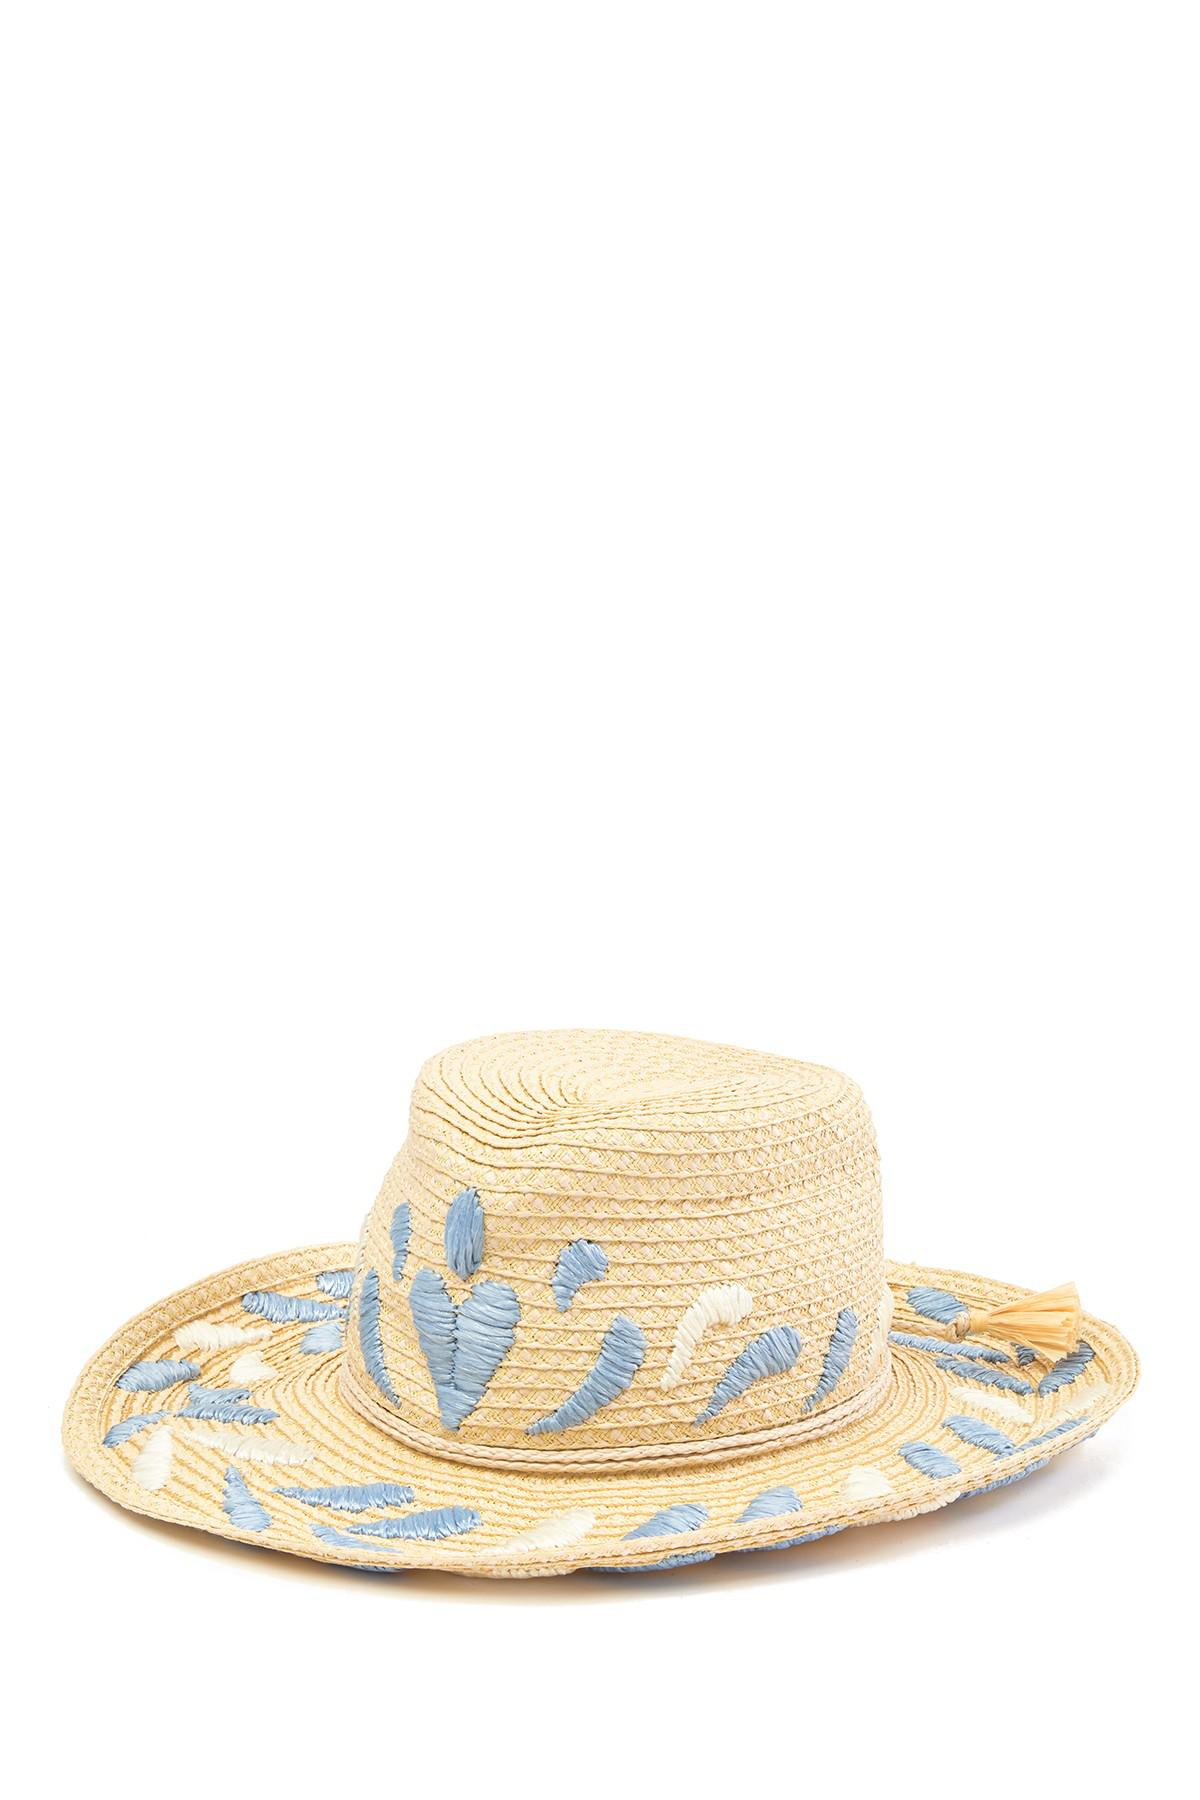 079feff9378 Lyst - Eric Javits Corsica Patterned Cowboy Hat in Natural - Save 71%